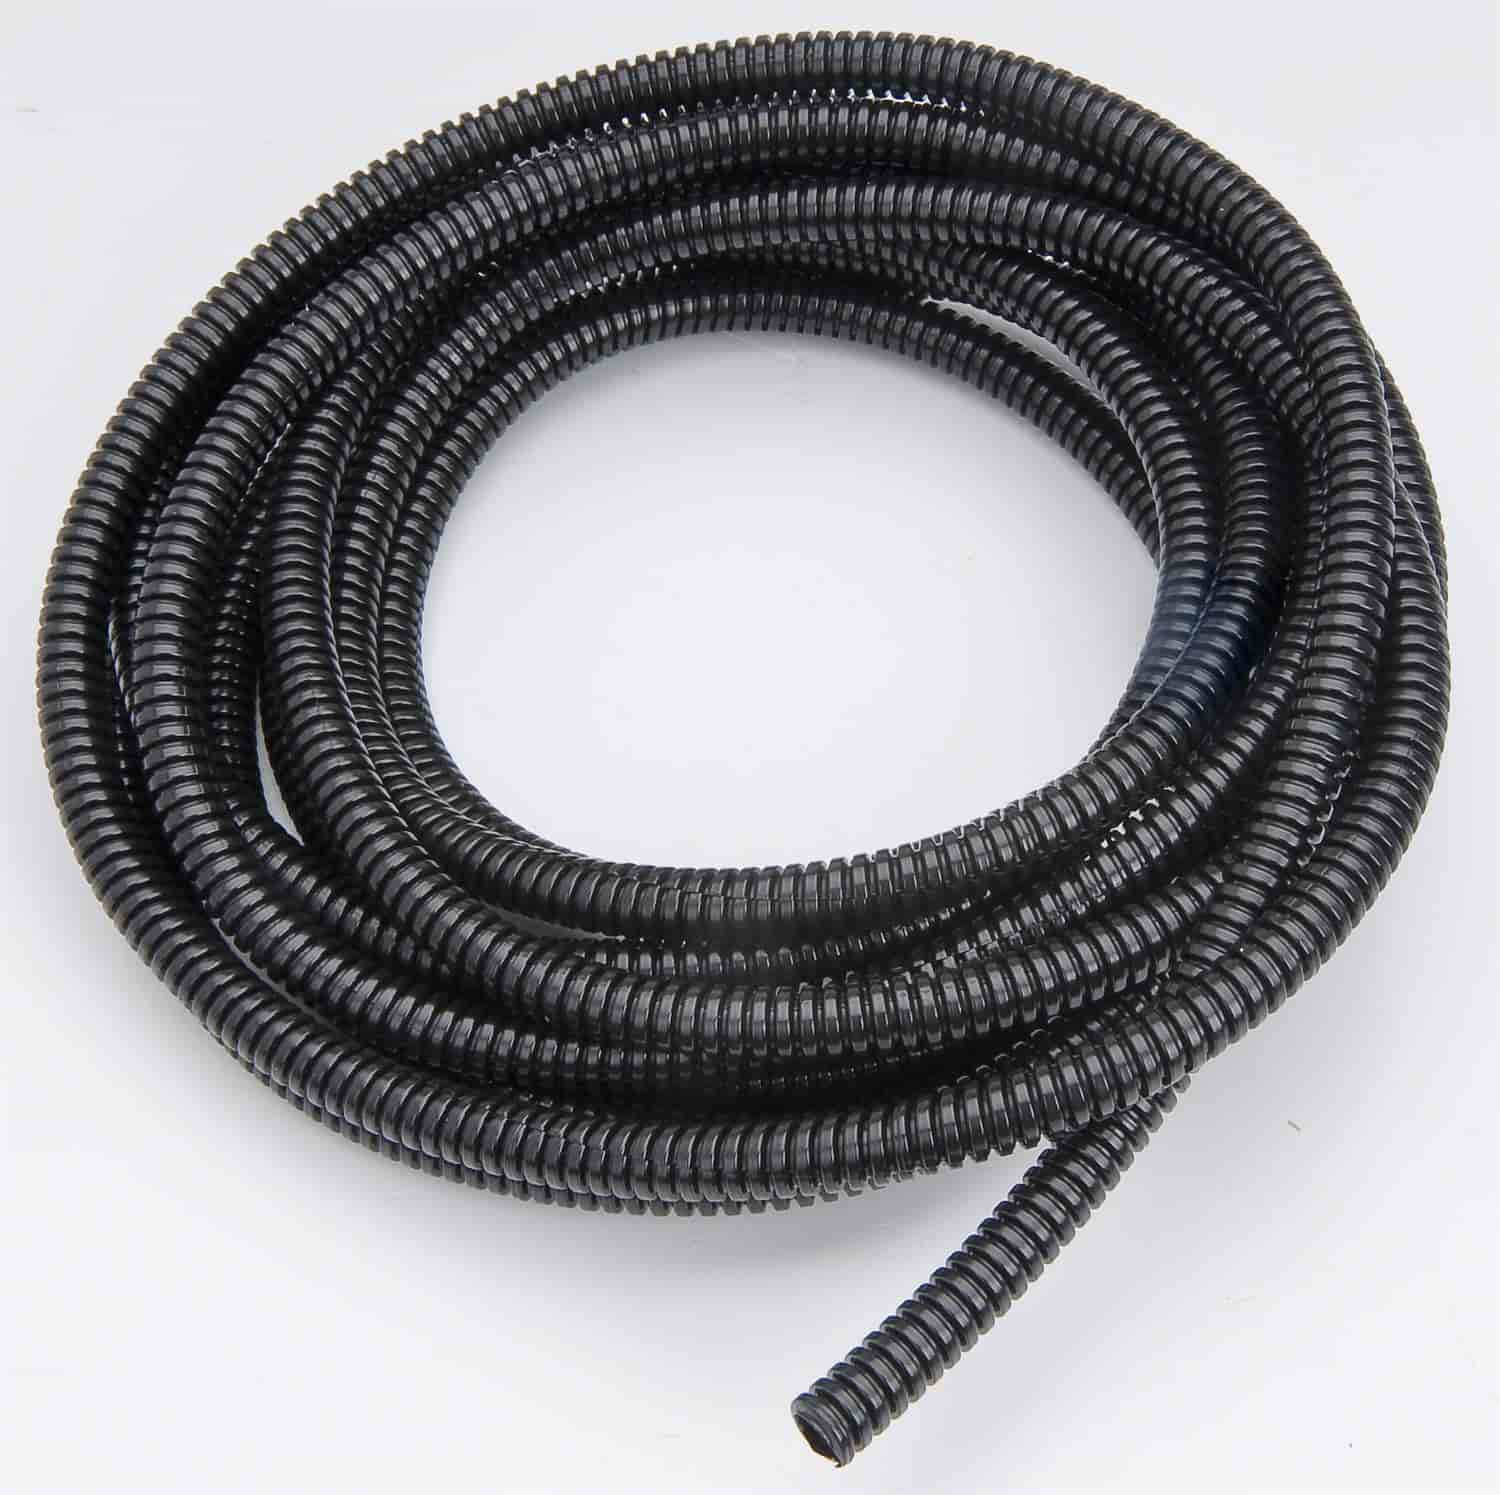 JEGS Performance Products 10660 - JEGS Convoluted Tubing